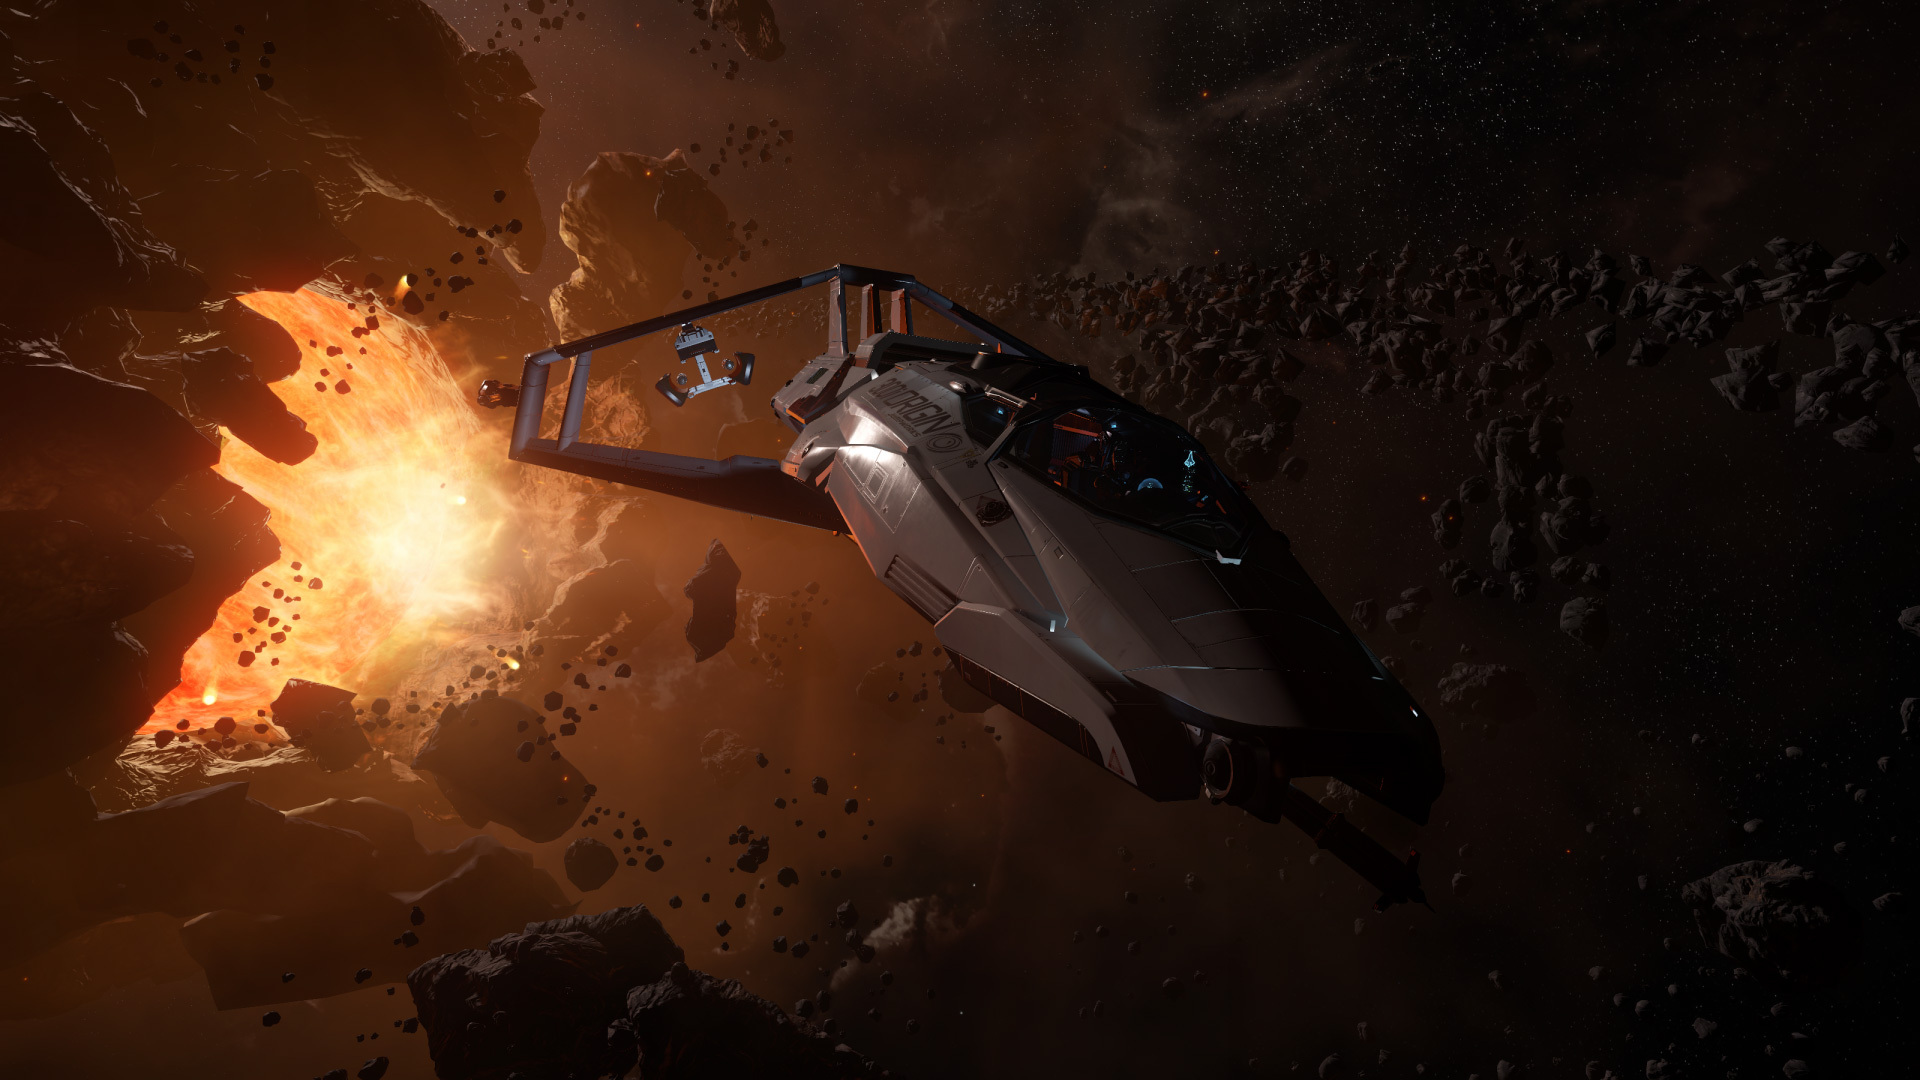 Star Citizen Pre Alpha Arena Commander Dogfighting Neogaf HD Wallpapers Download free images and photos [musssic.tk]